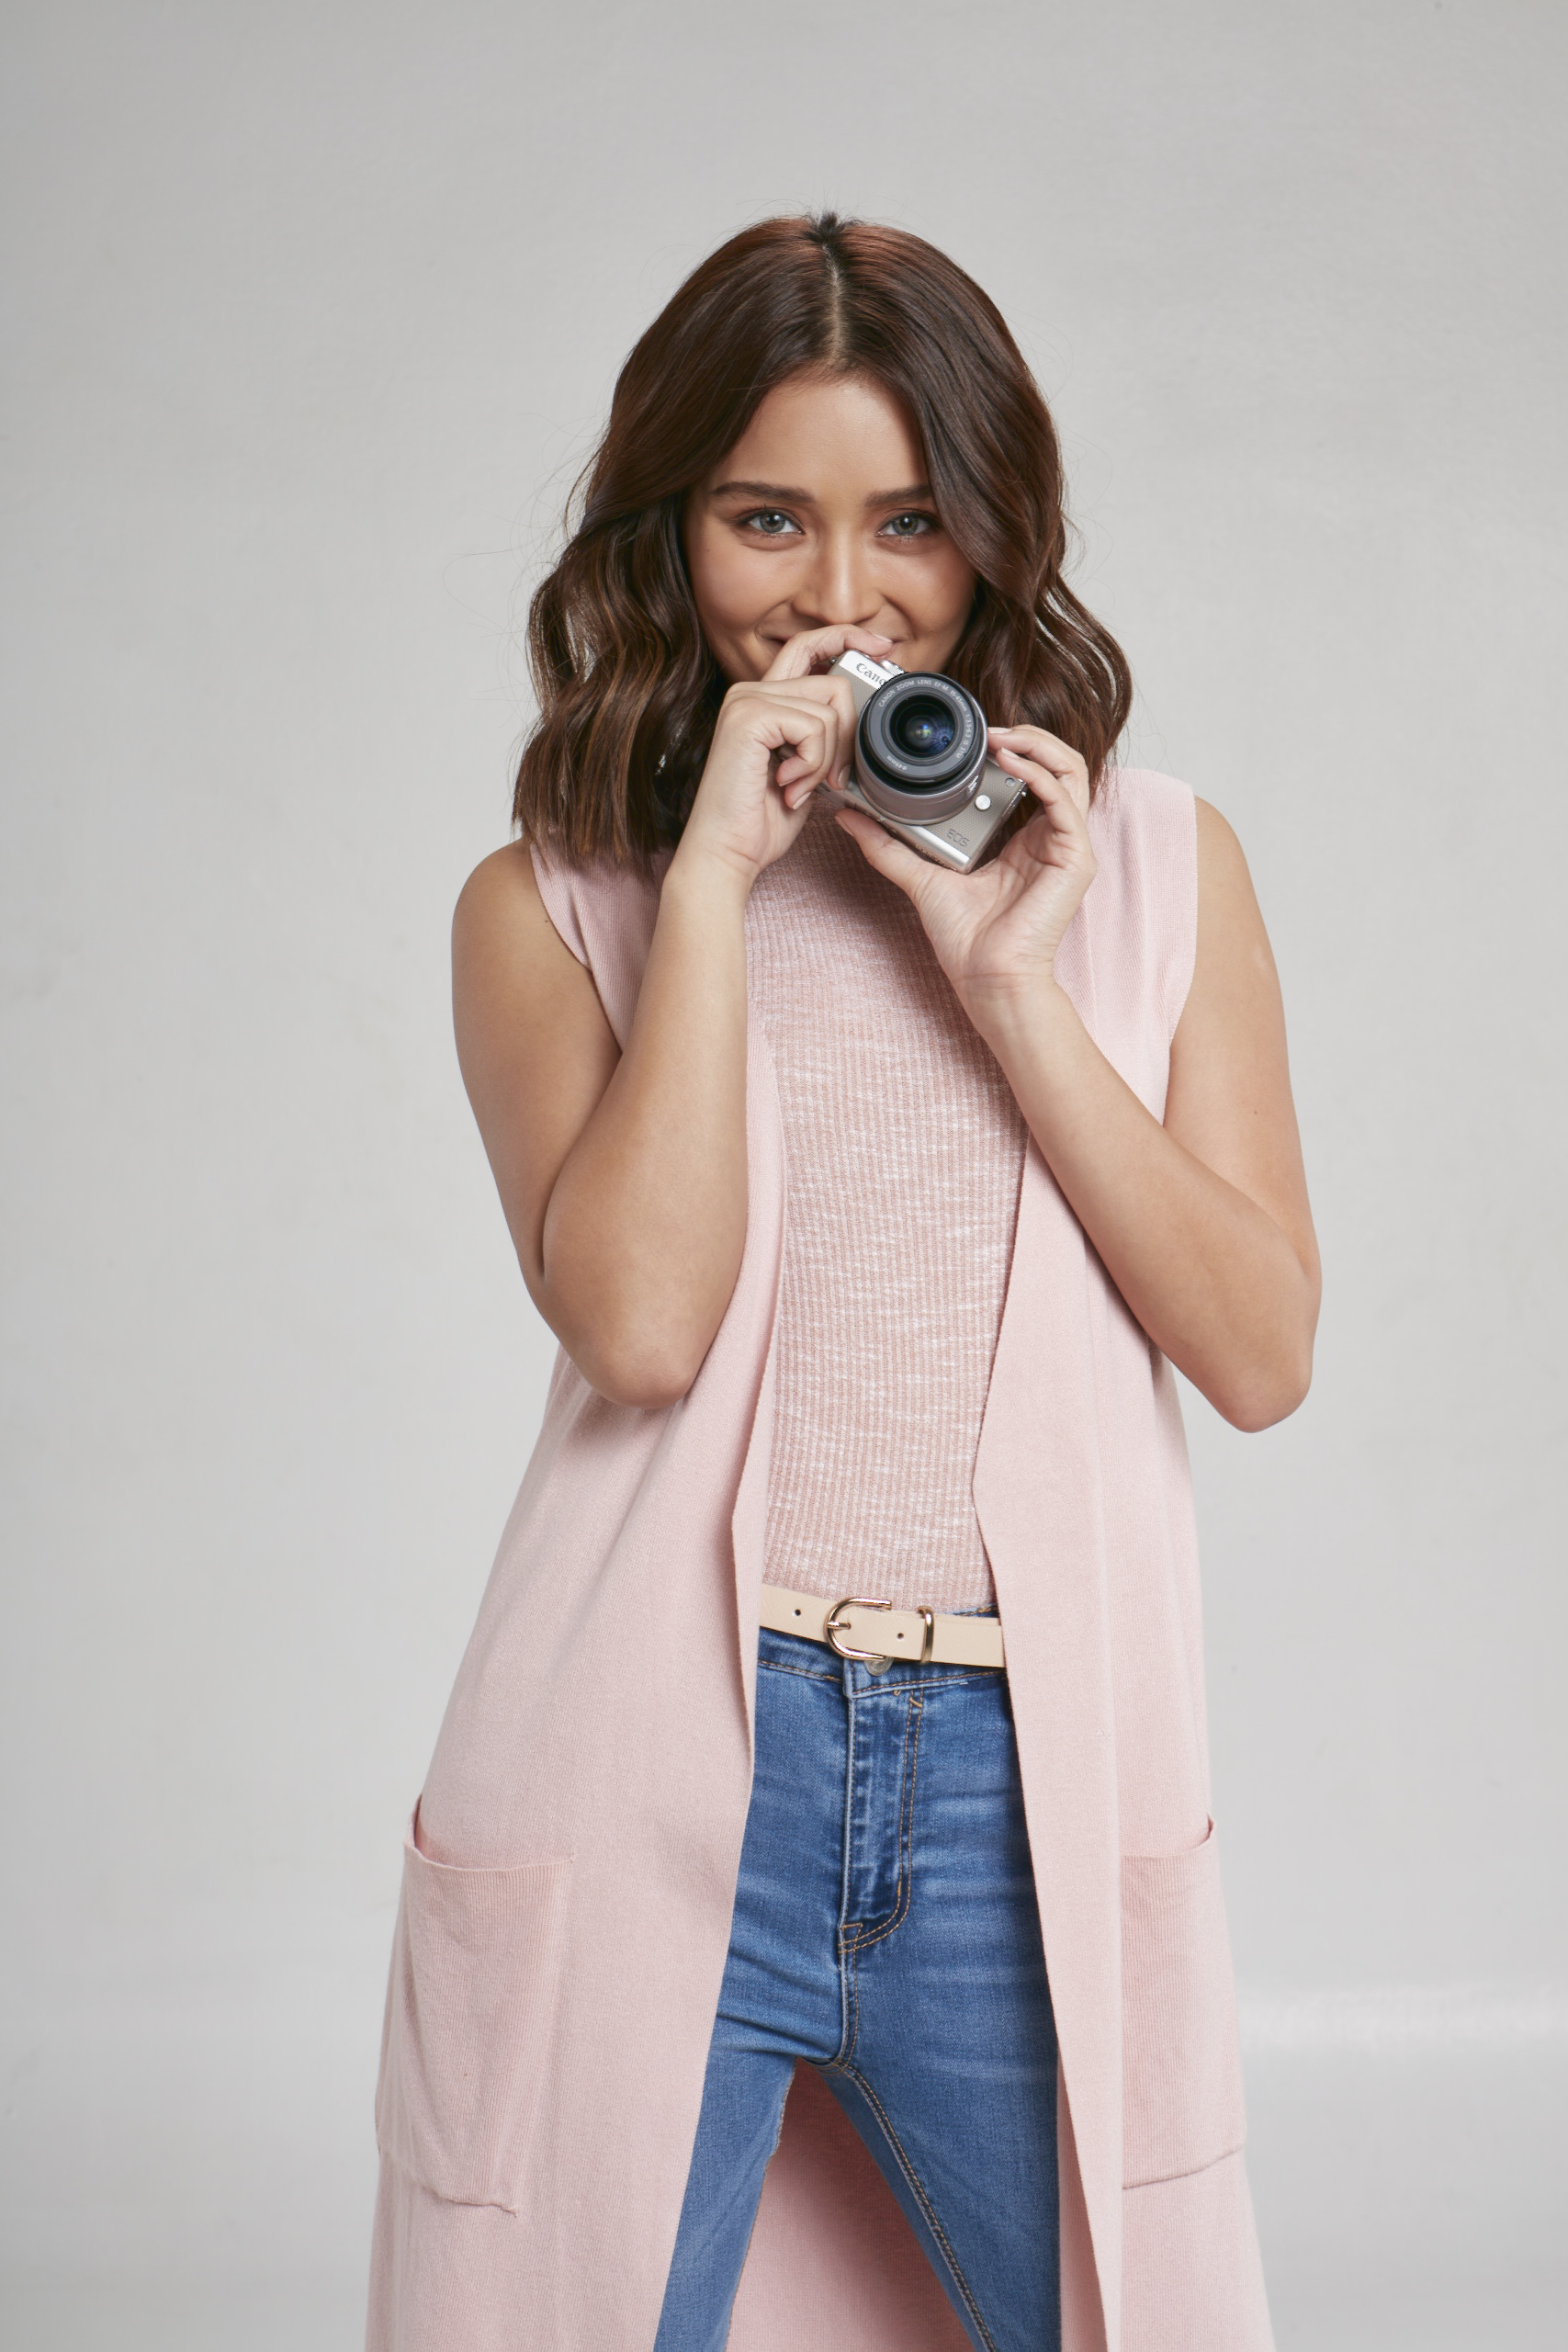 Kathryn Bernardo Gets M-powered with the Newest Canon EOS M100